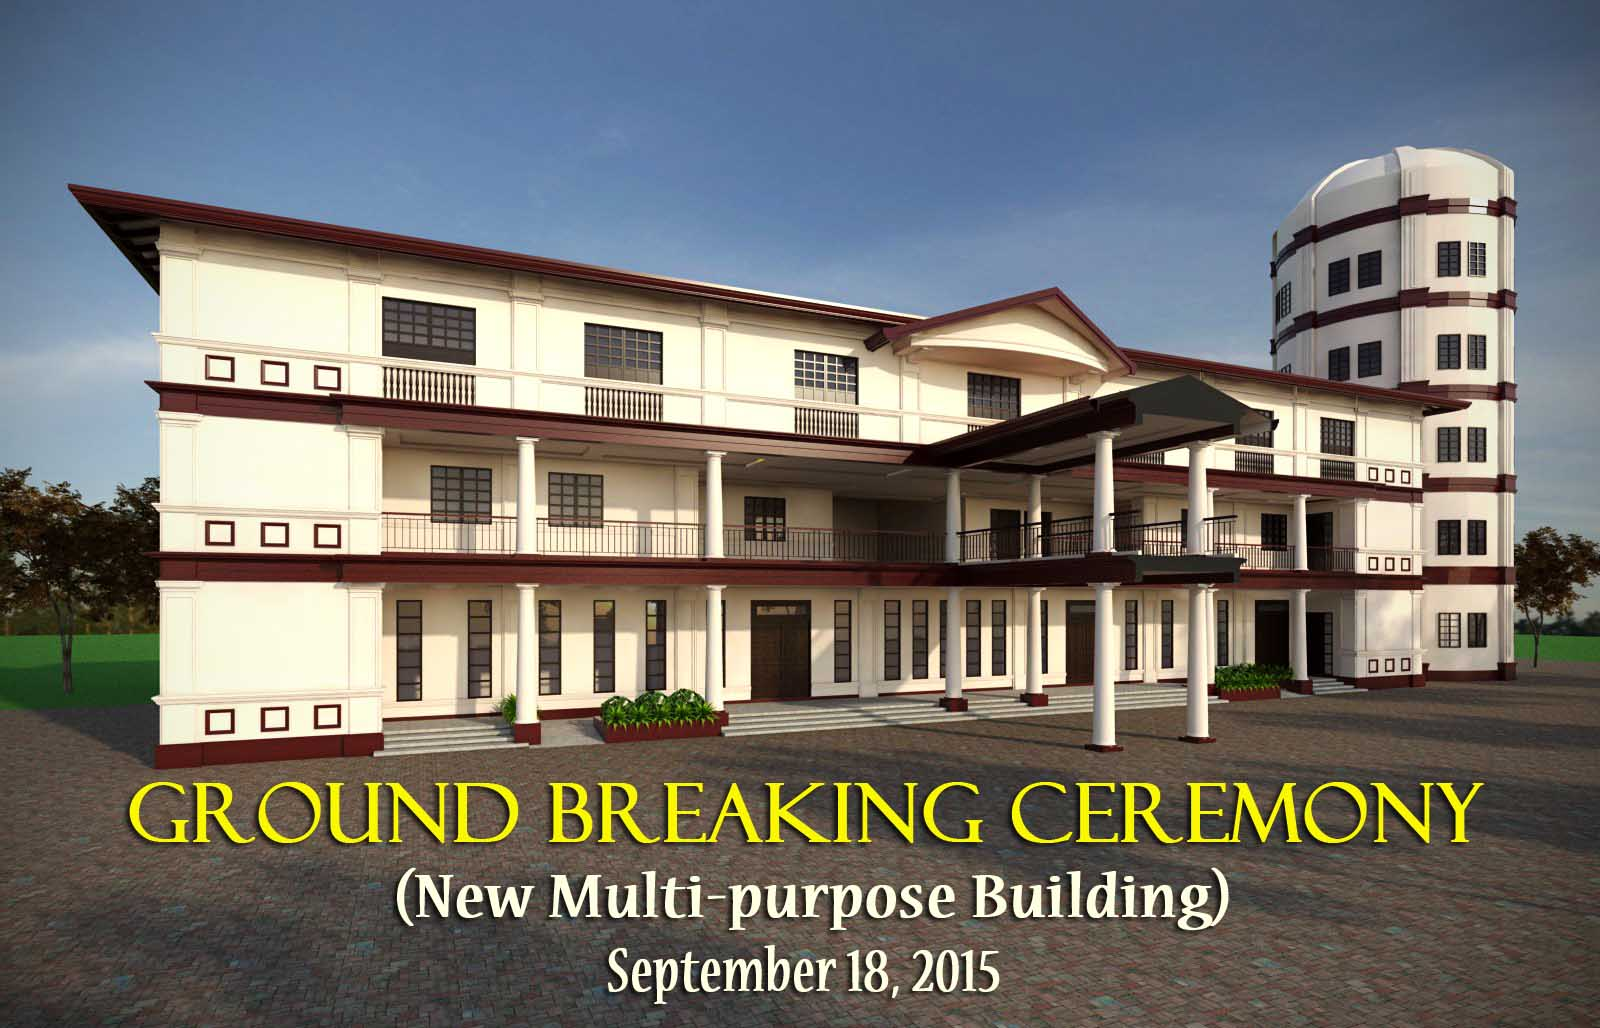 GROUNDBREAKING CEREMONY OF THE NEW MULTI-PURPOSE BUILDING